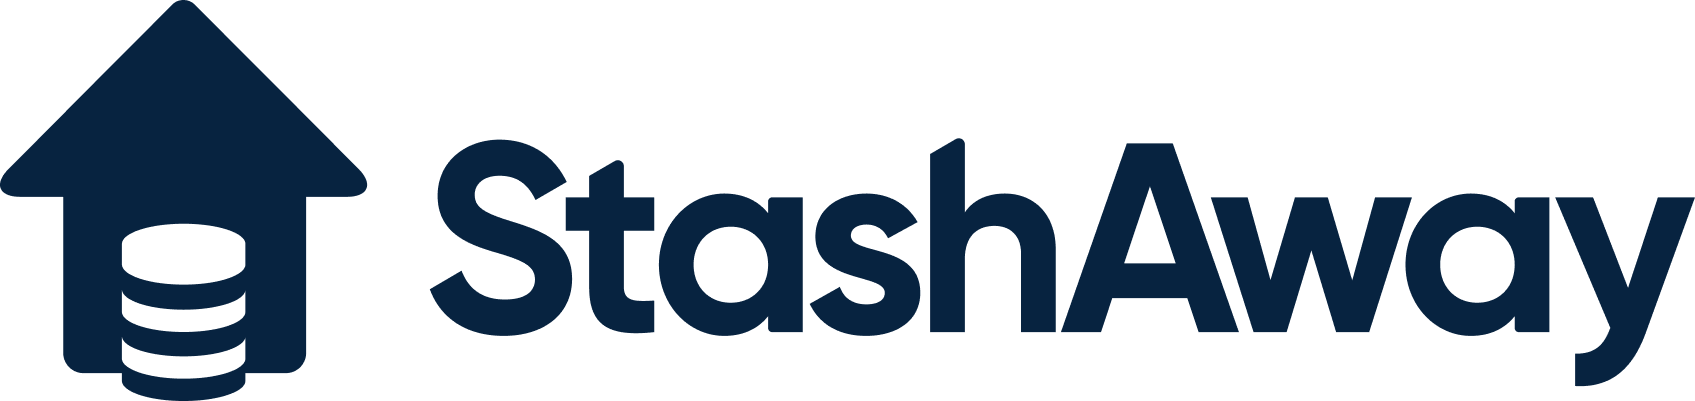 Everything You Need to Know about StashAway, the Investment